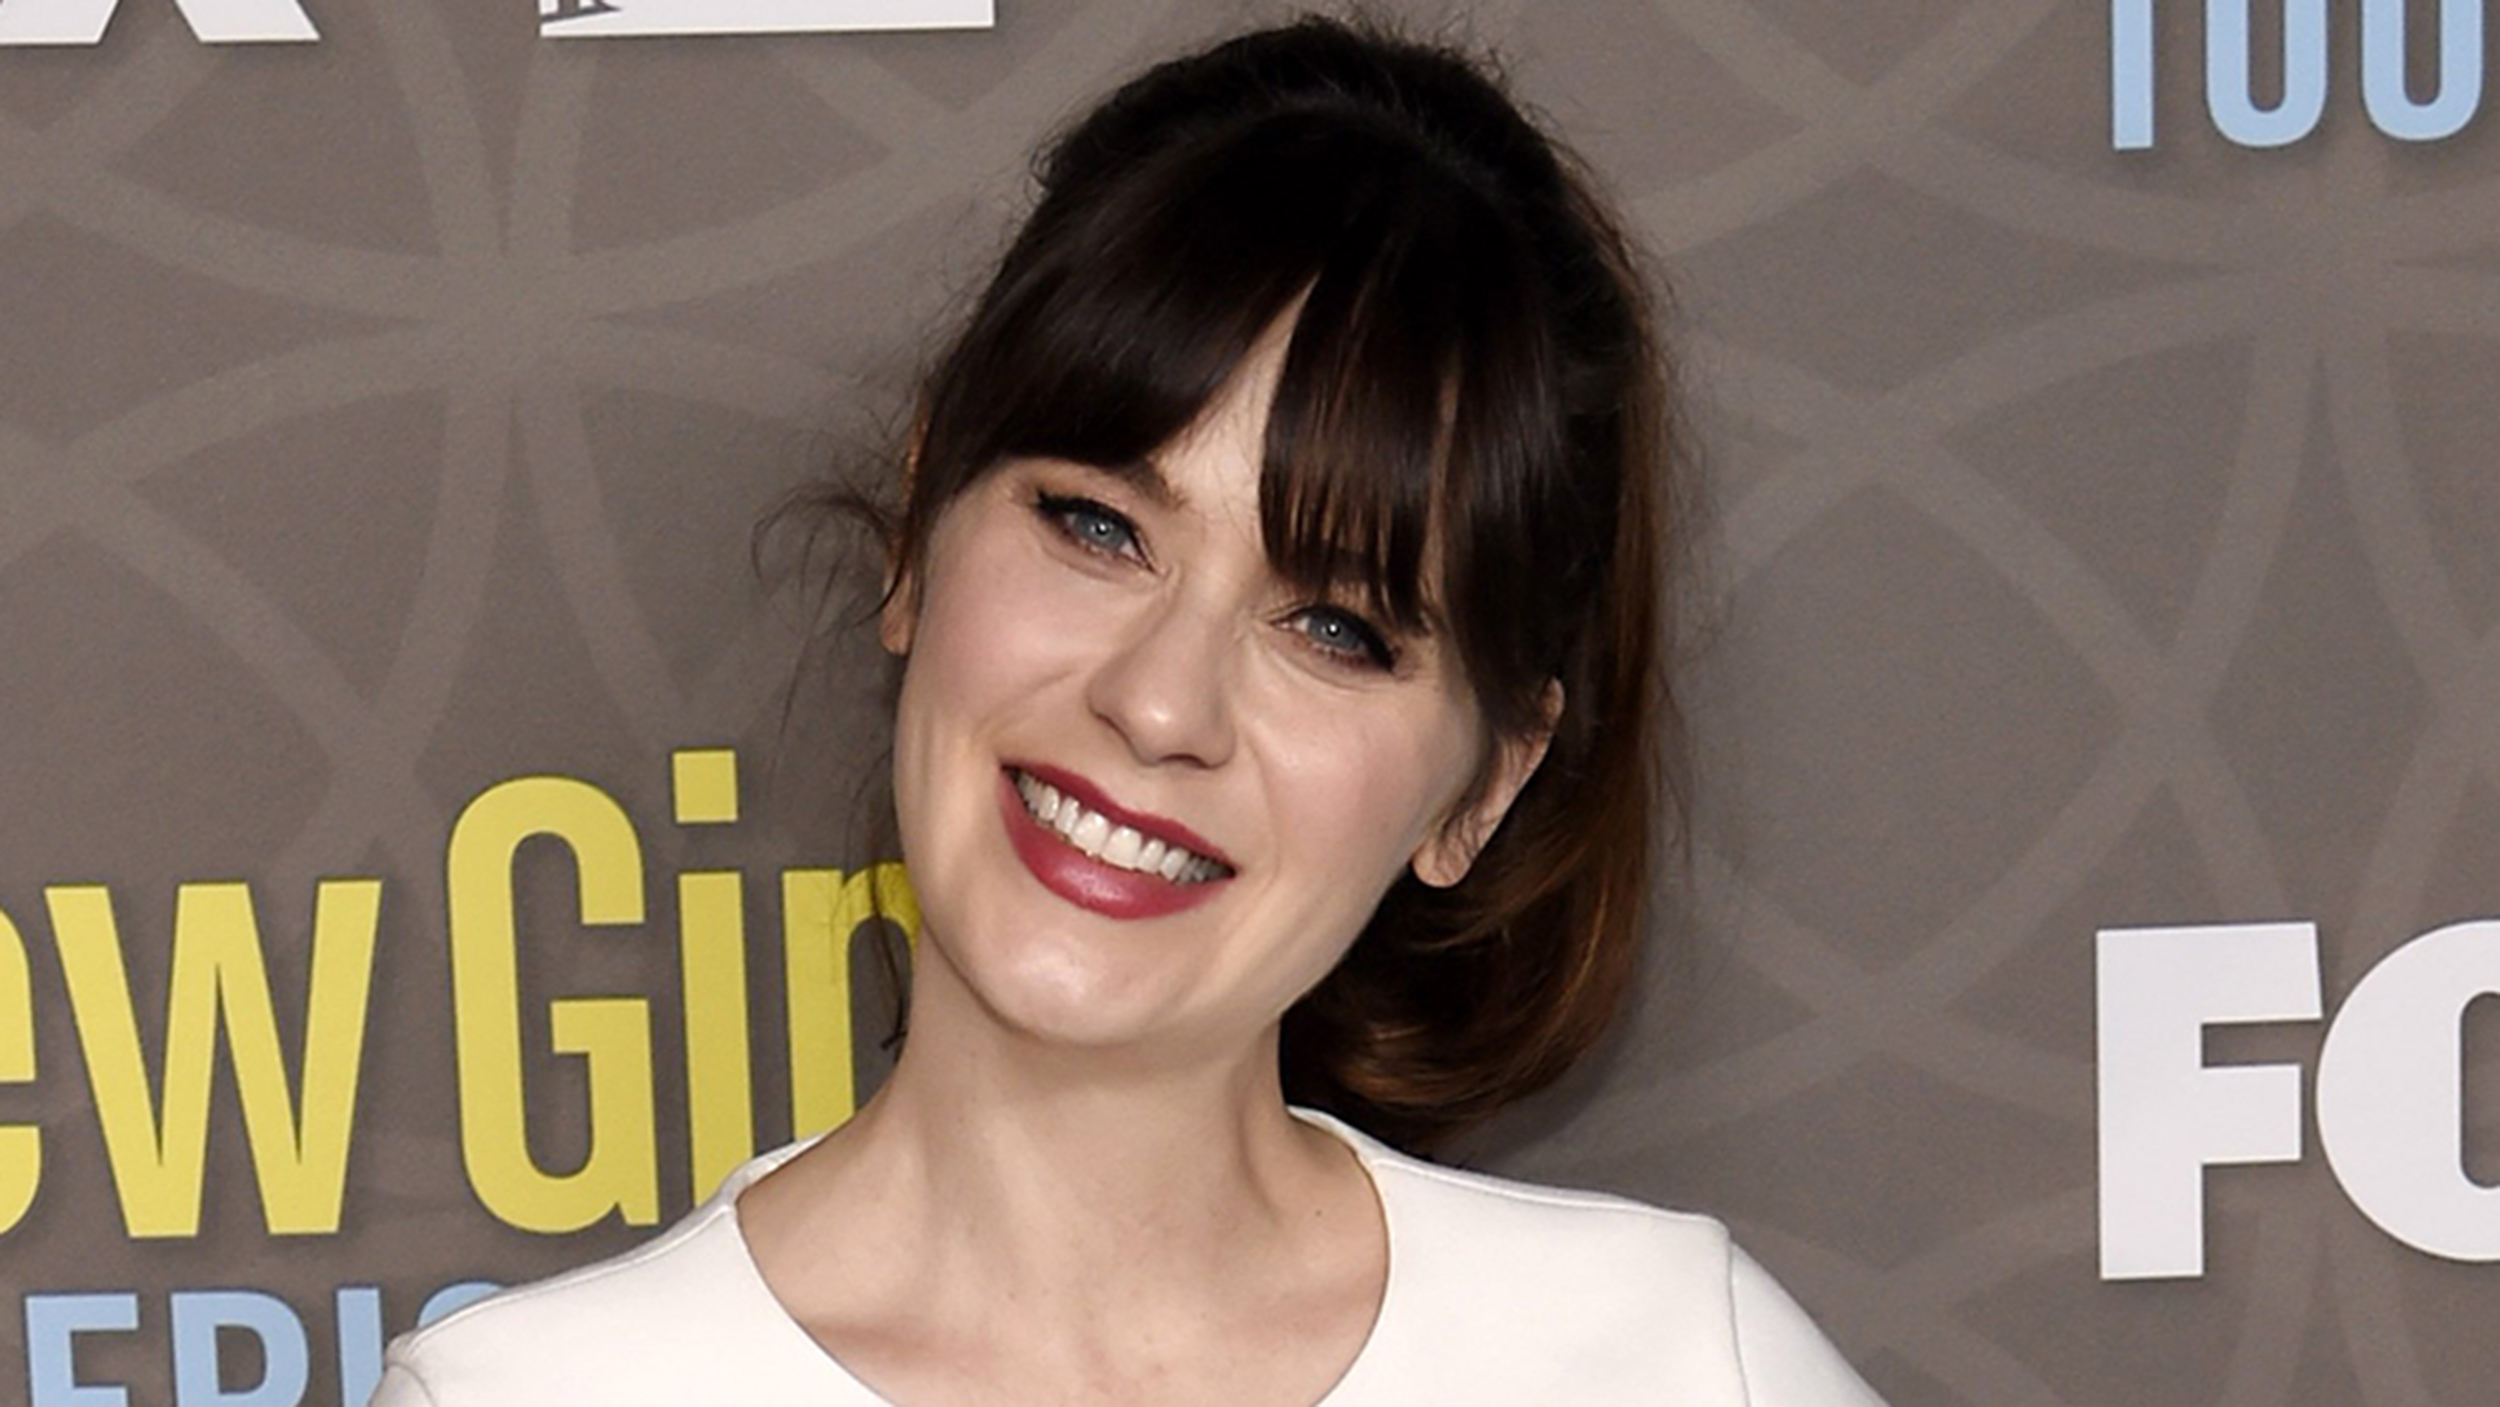 Zooey Deschanel Gigantic Body Double Zooey Deschanel blasts...